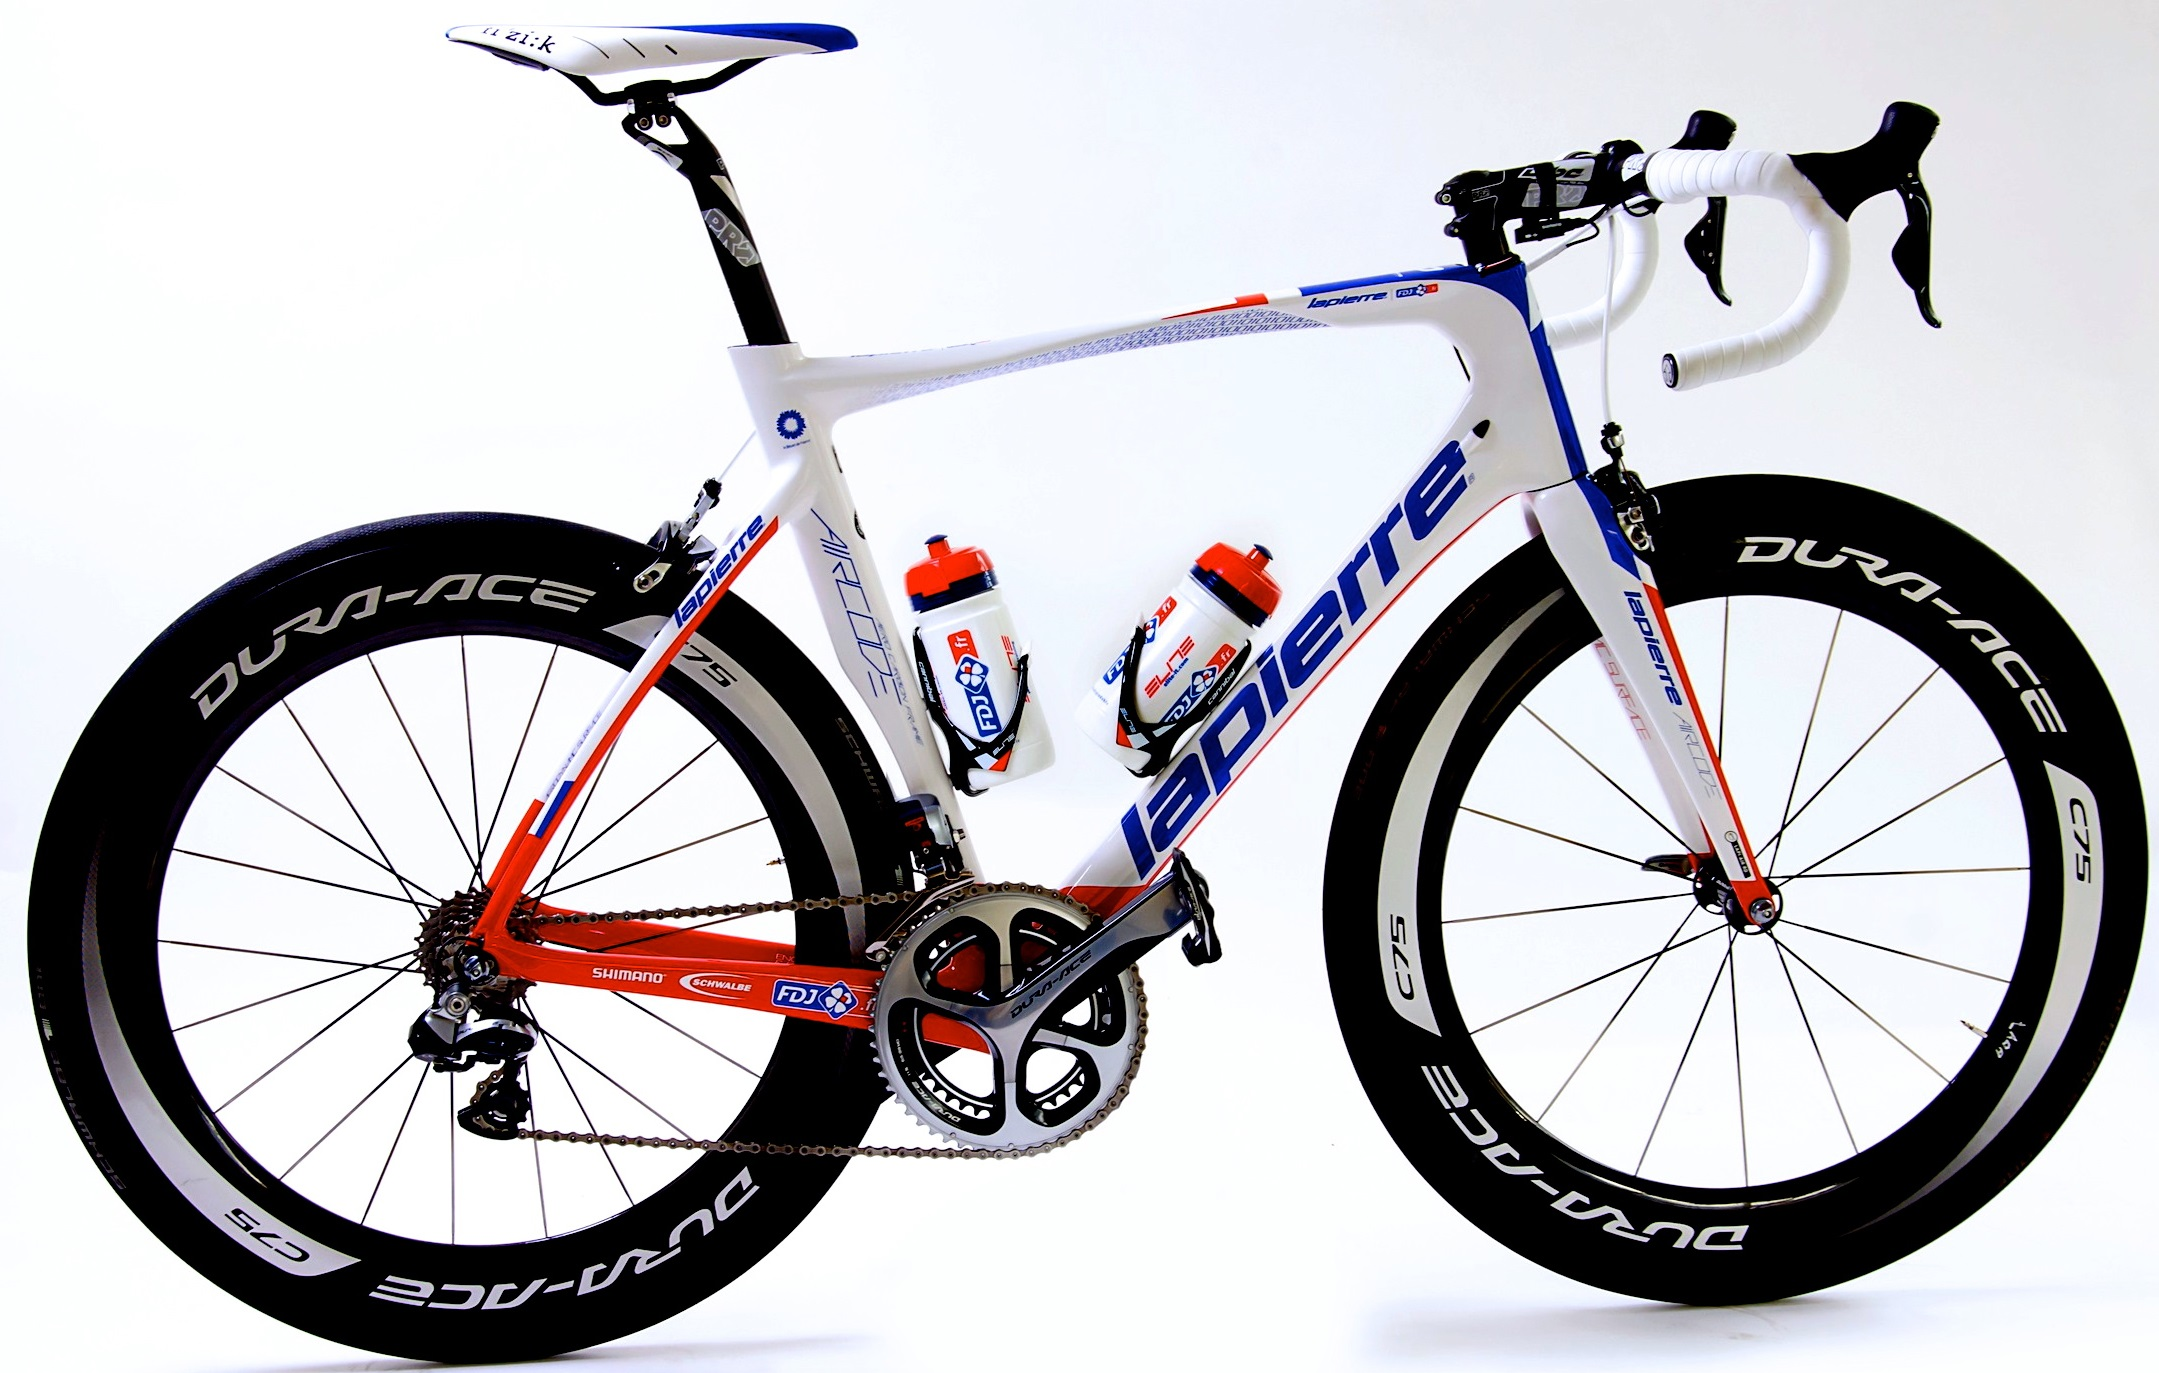 Lapierre Aircode Official Team FDJ 2014neuroticarnutzLapierre Aircode Official Team FDJ 20142015 Merida Reacto Team lime dura ace black